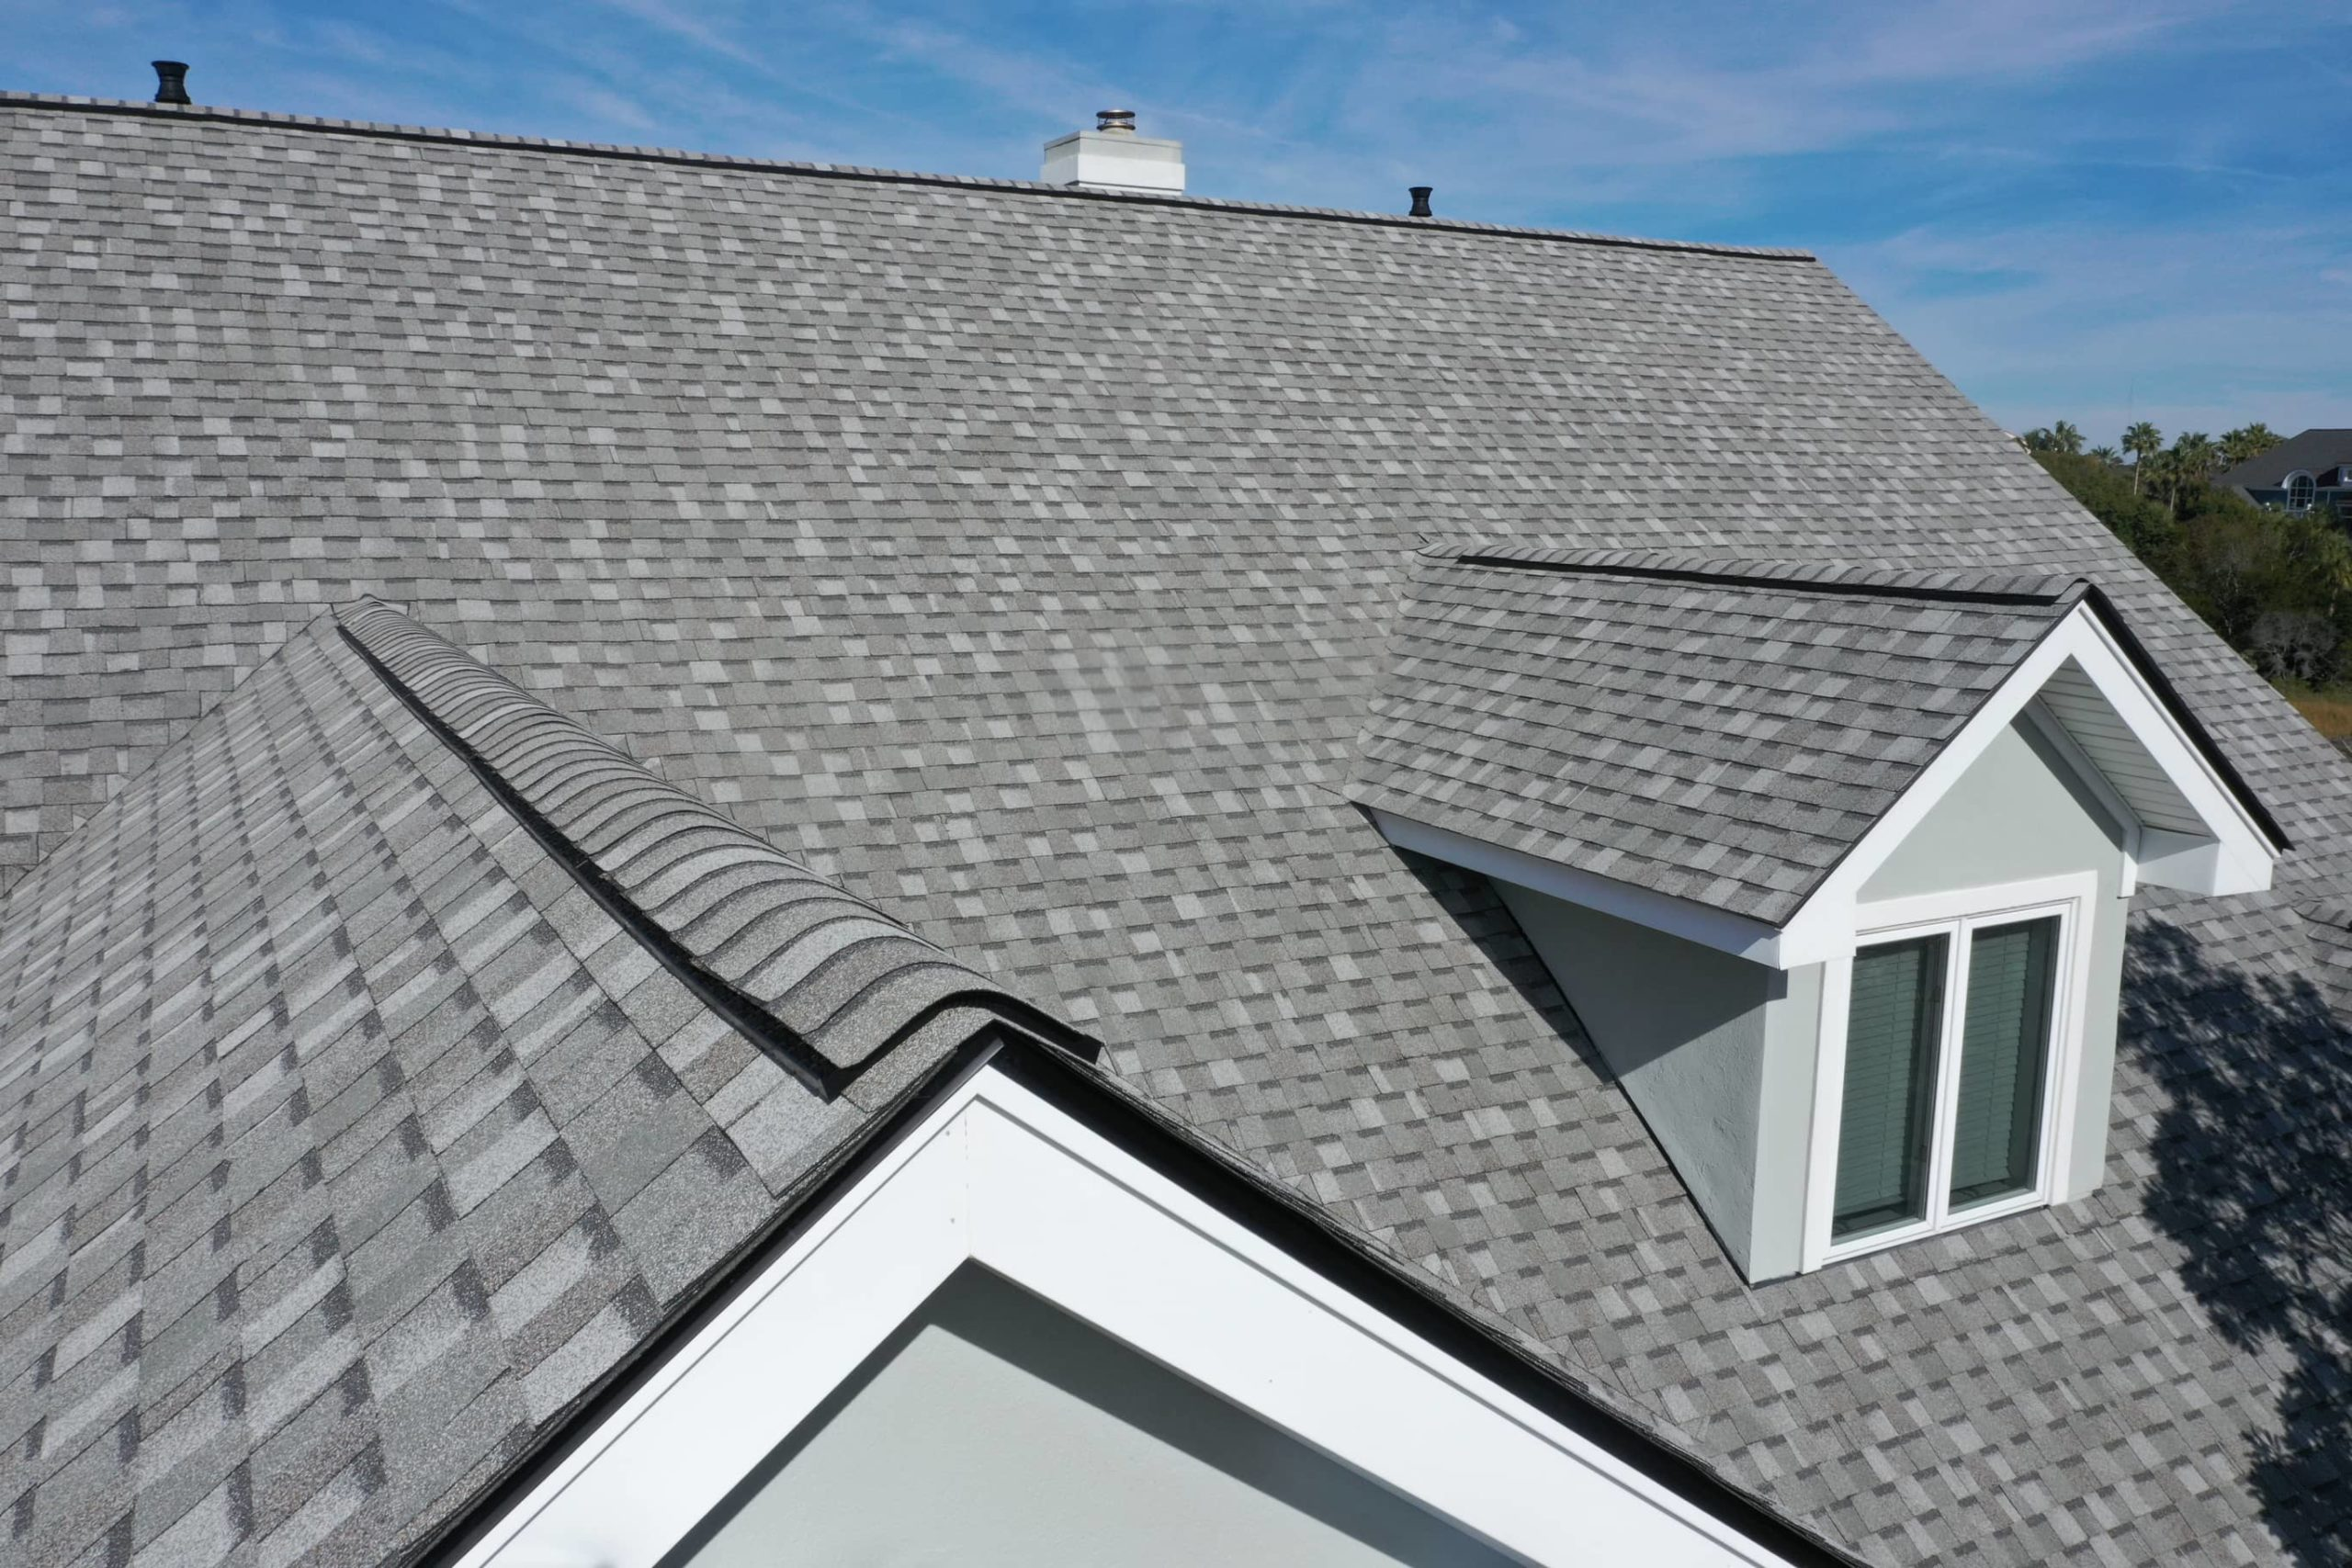 This is an image of a residential property using roof shingles for the roofing.